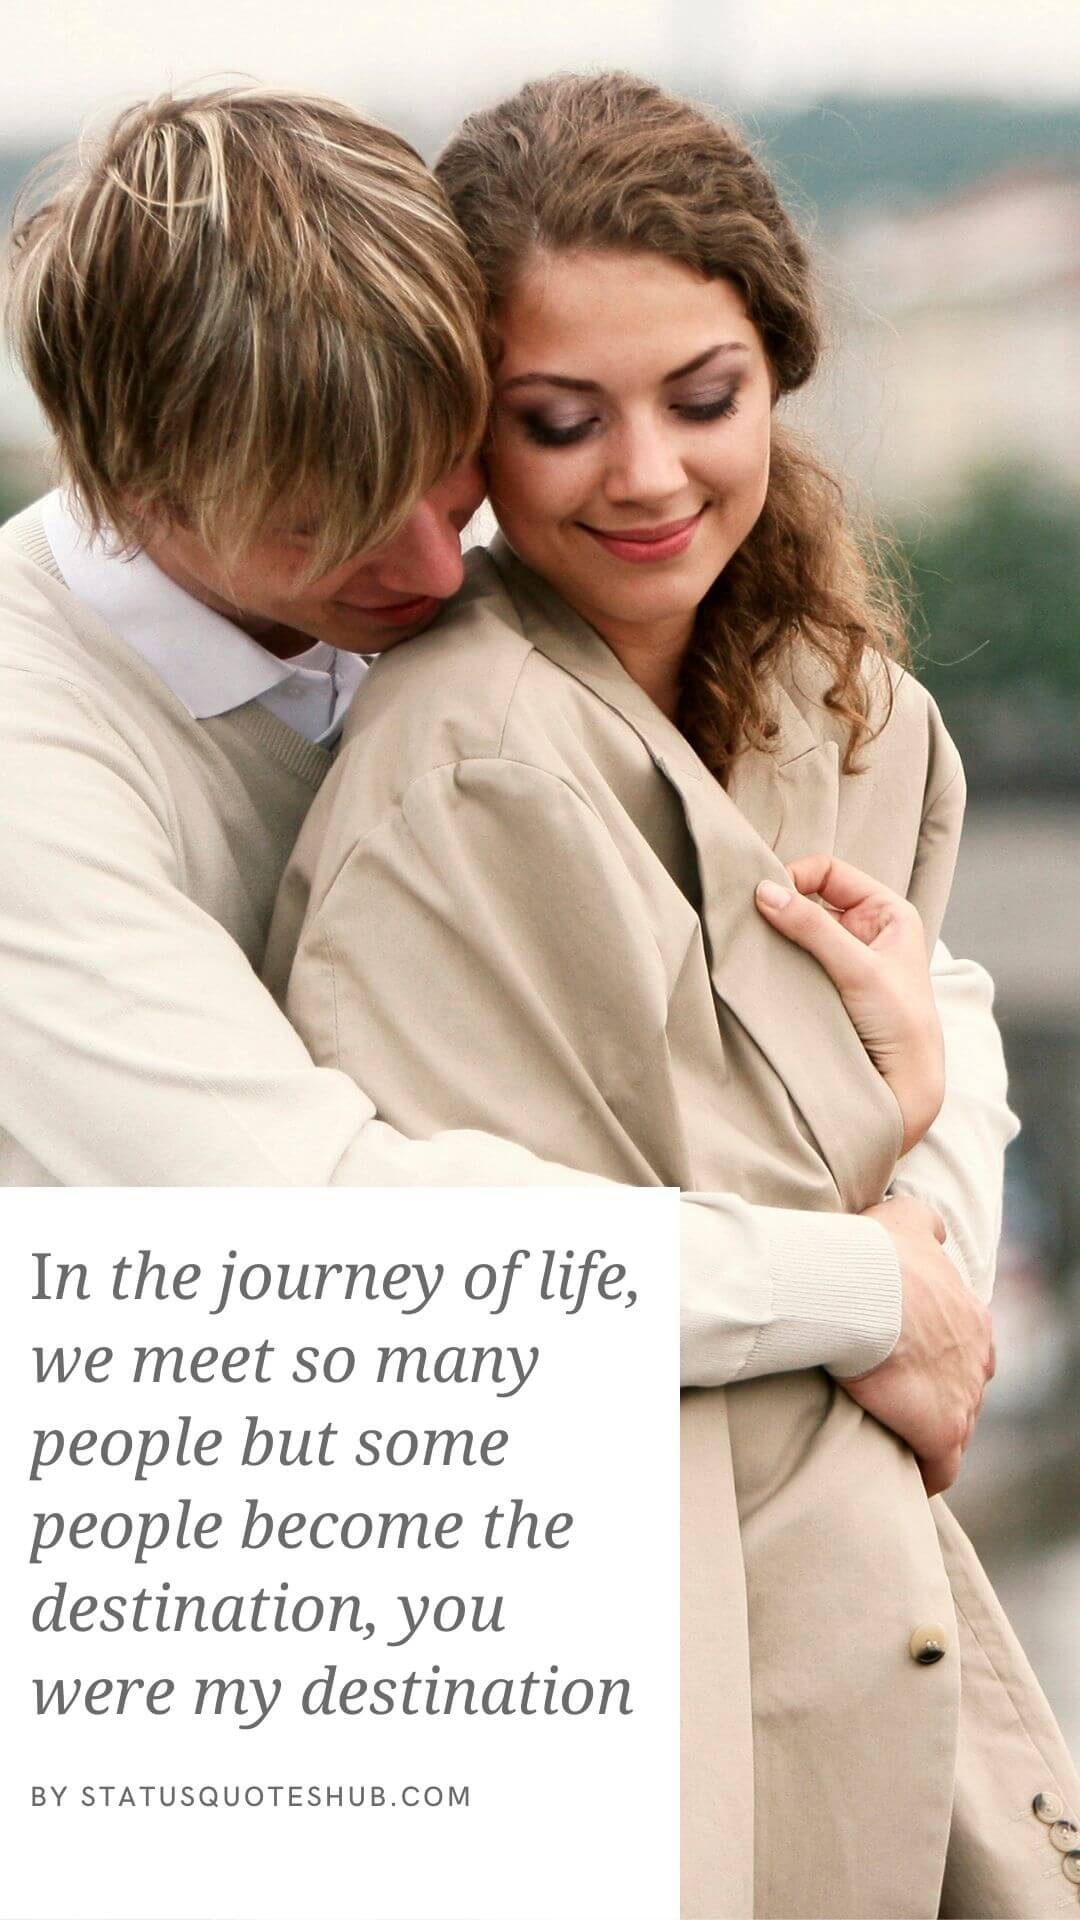 In the journey of life, we meet so many people but some people become the destination. you were my destination.